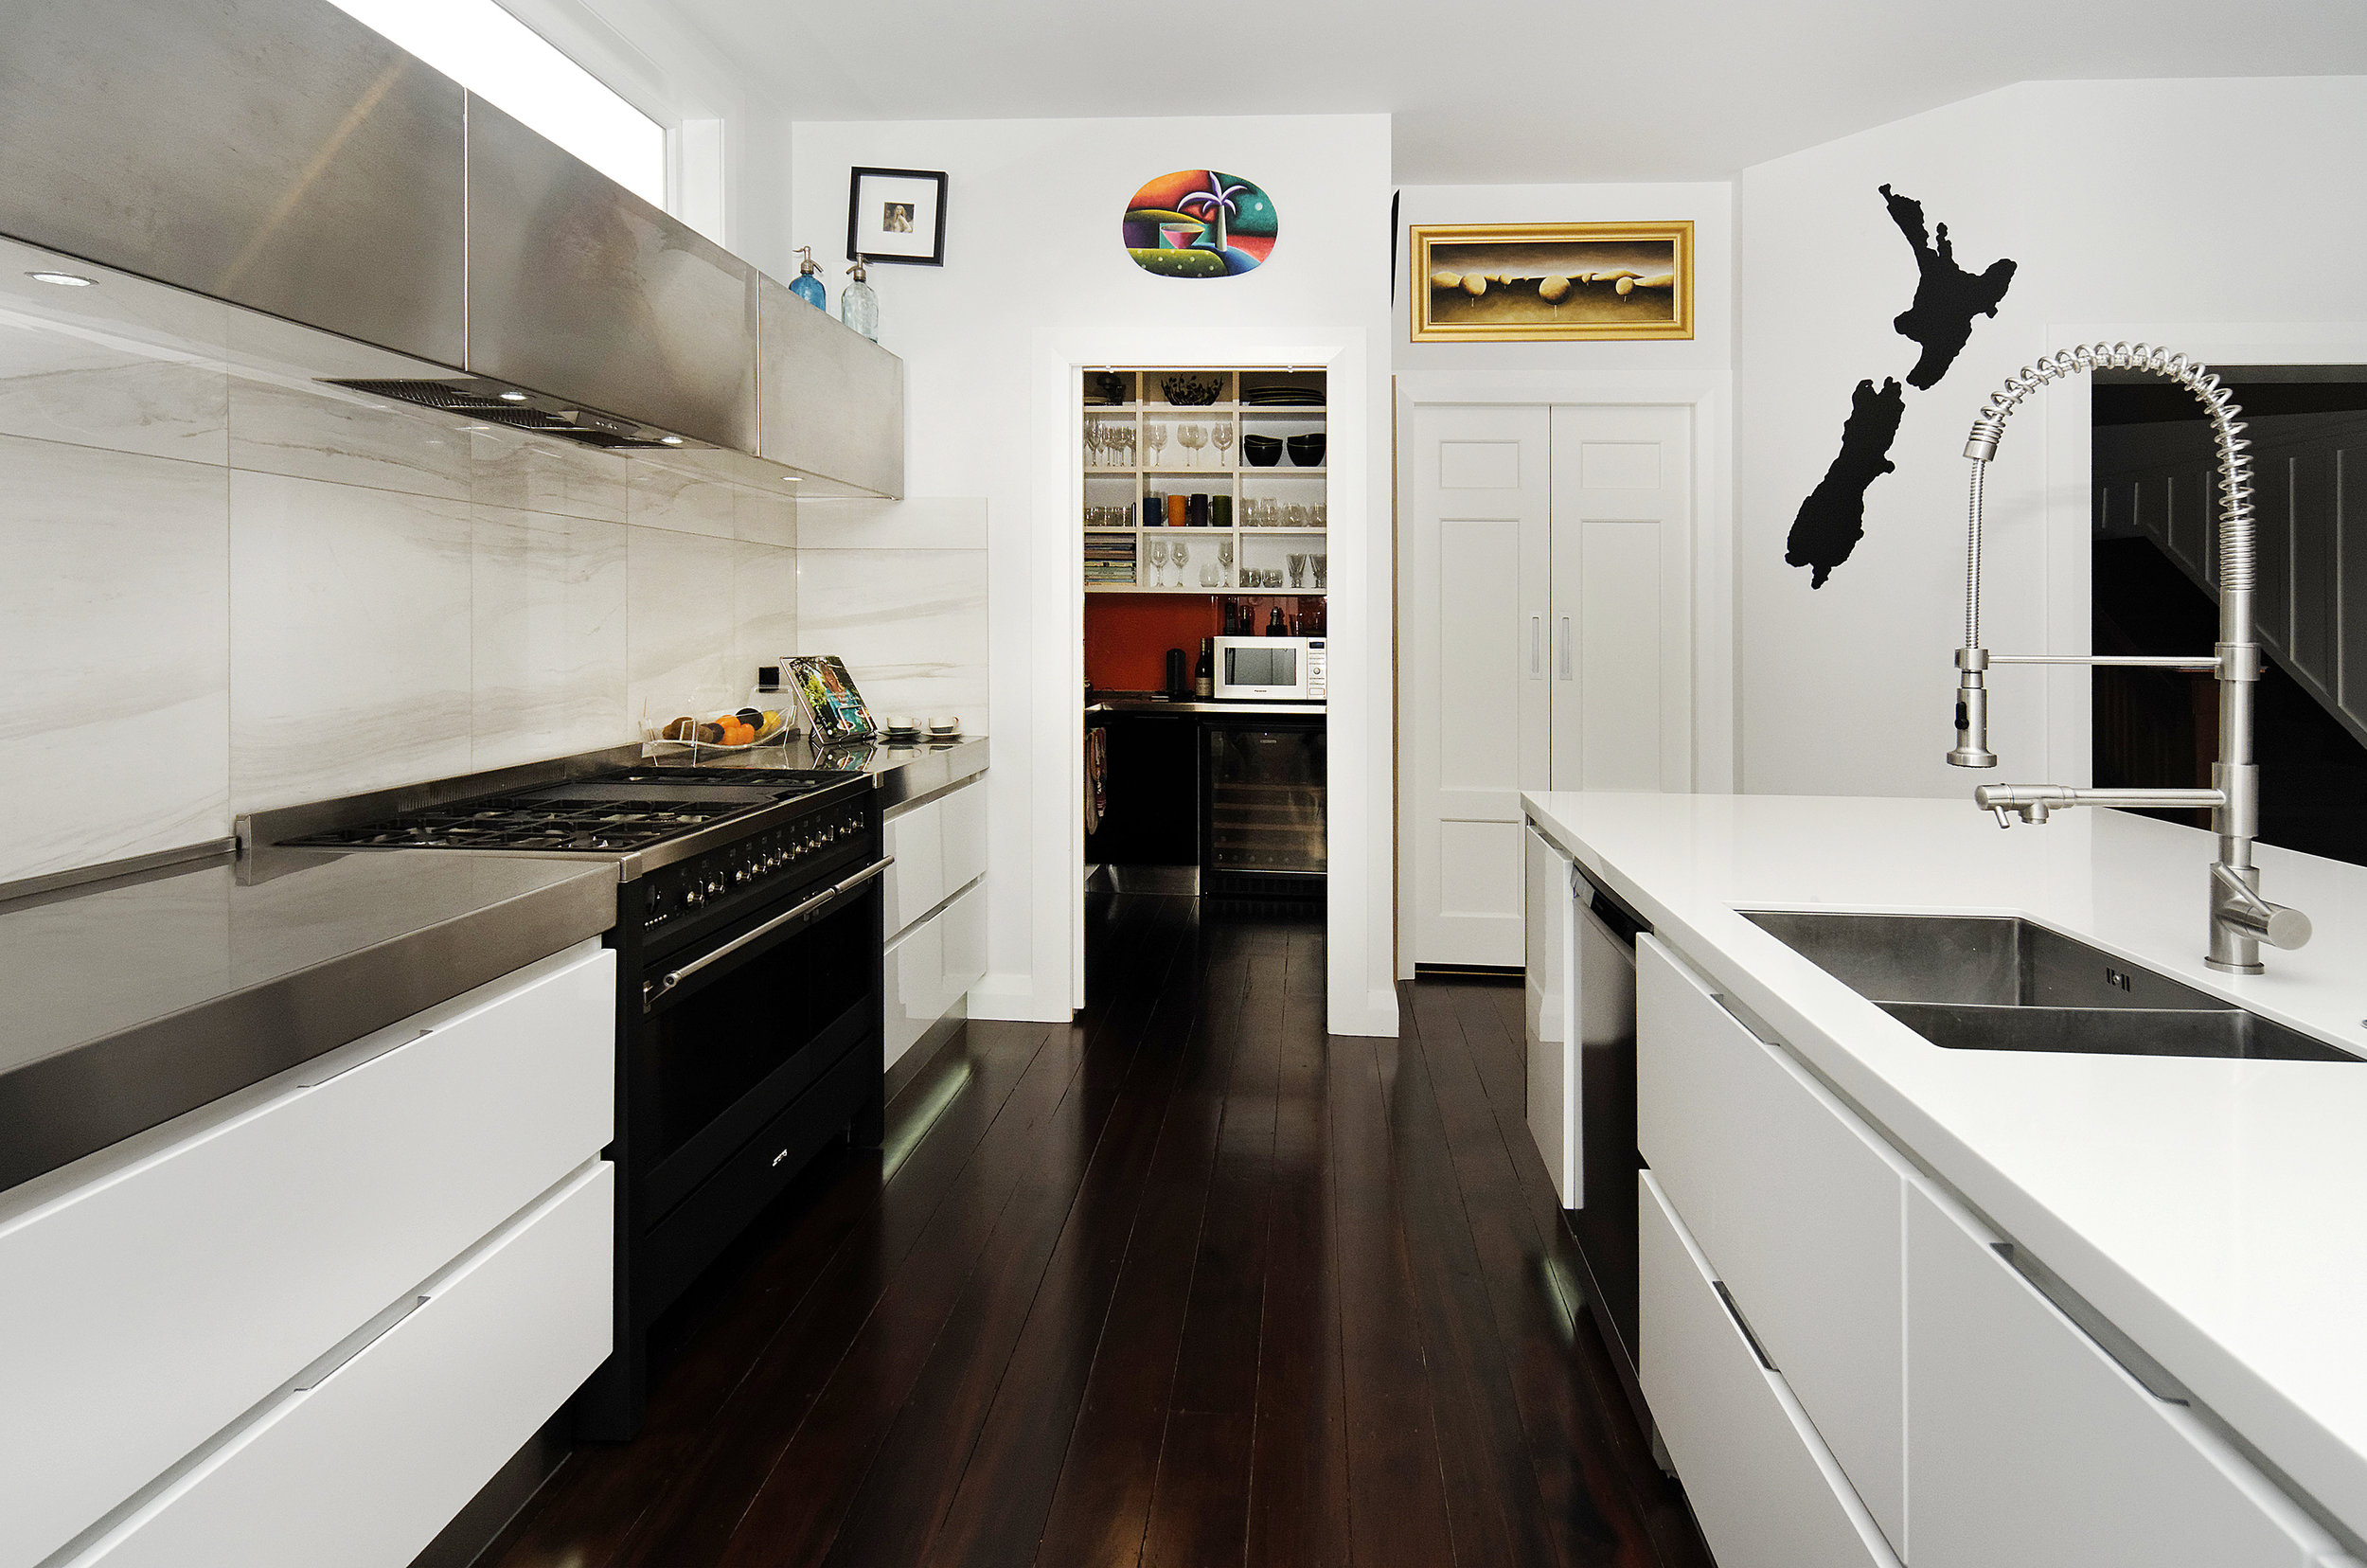 Bellevue Rd 1-kitchen -5p_DxO.jpg